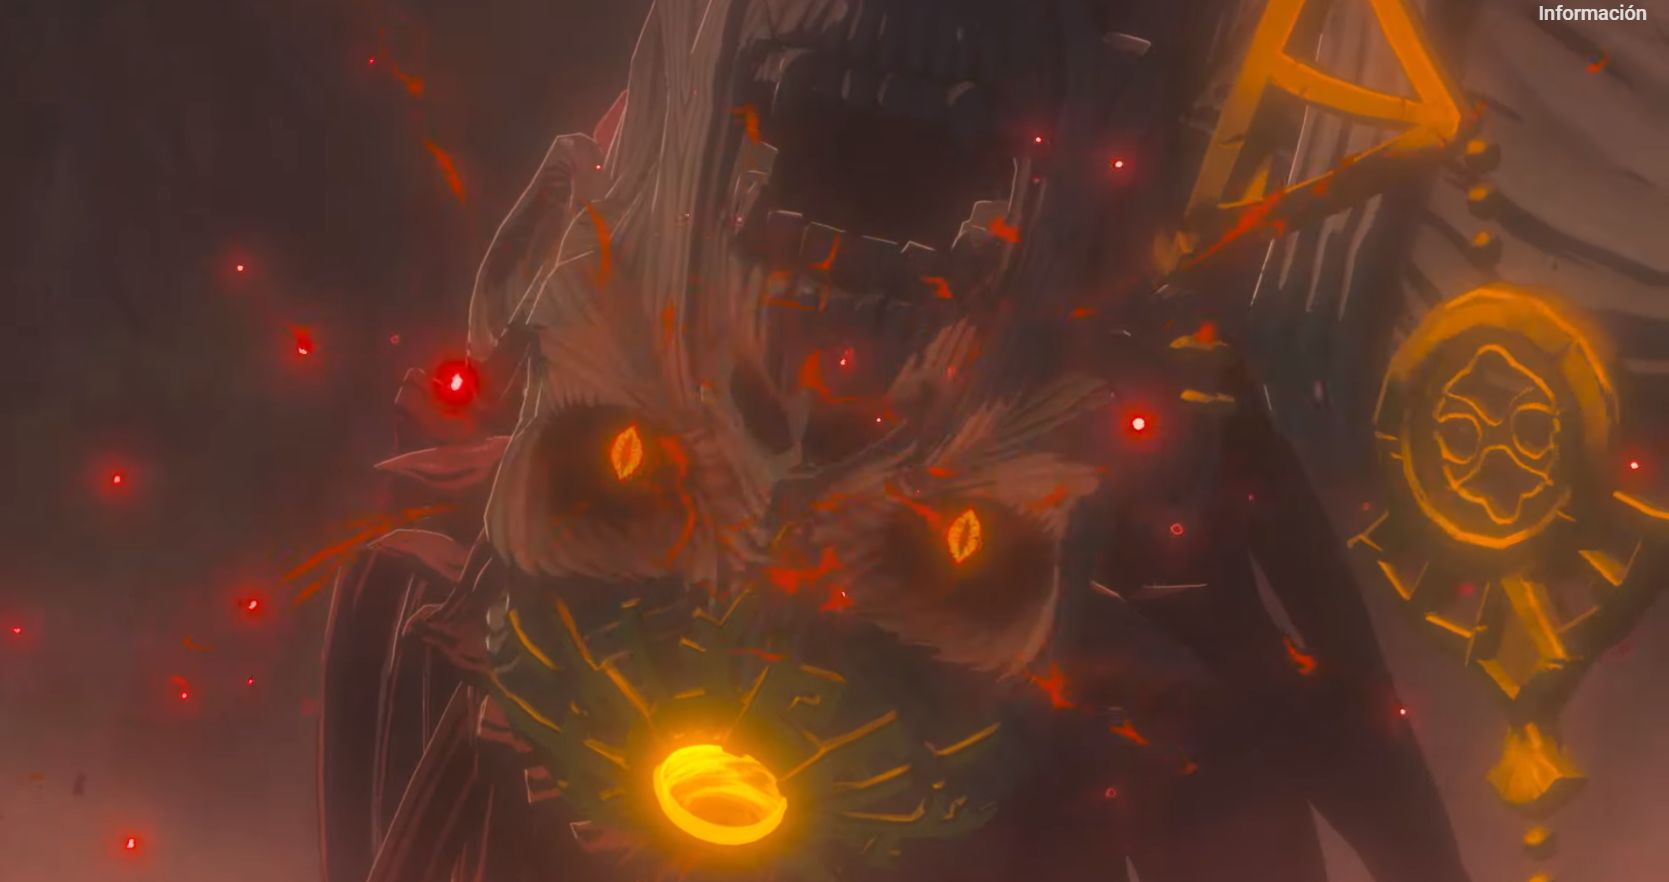 El tema de Ganondorf y un tema secreto en el tráiler de Breath of the Wild 2